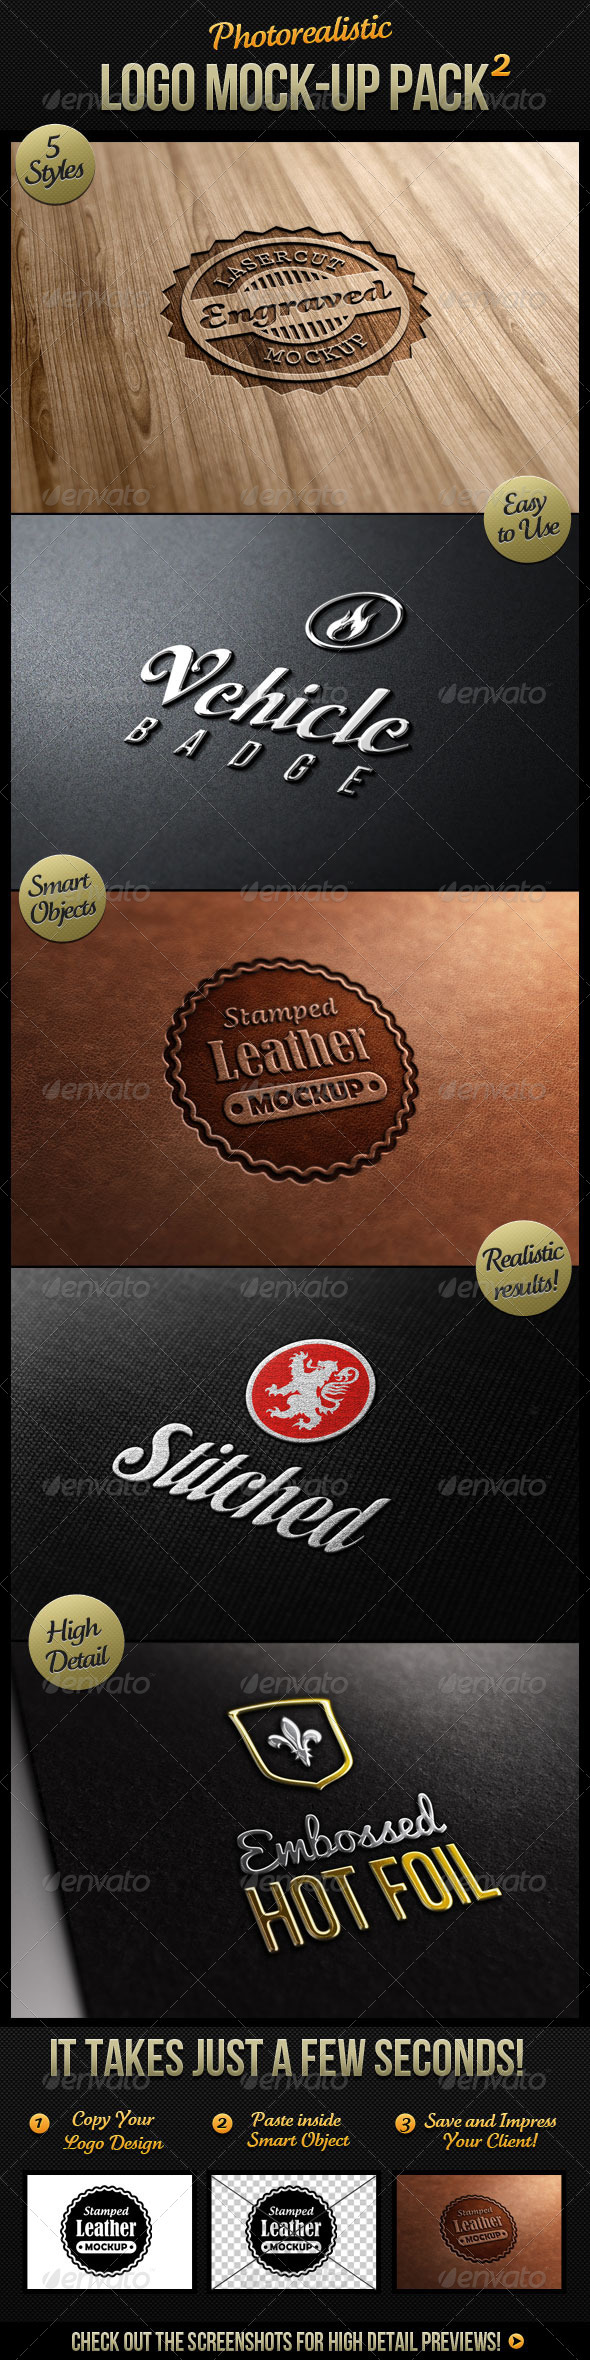 Product Mockups & Graphic Design Templates - GraphicRiver